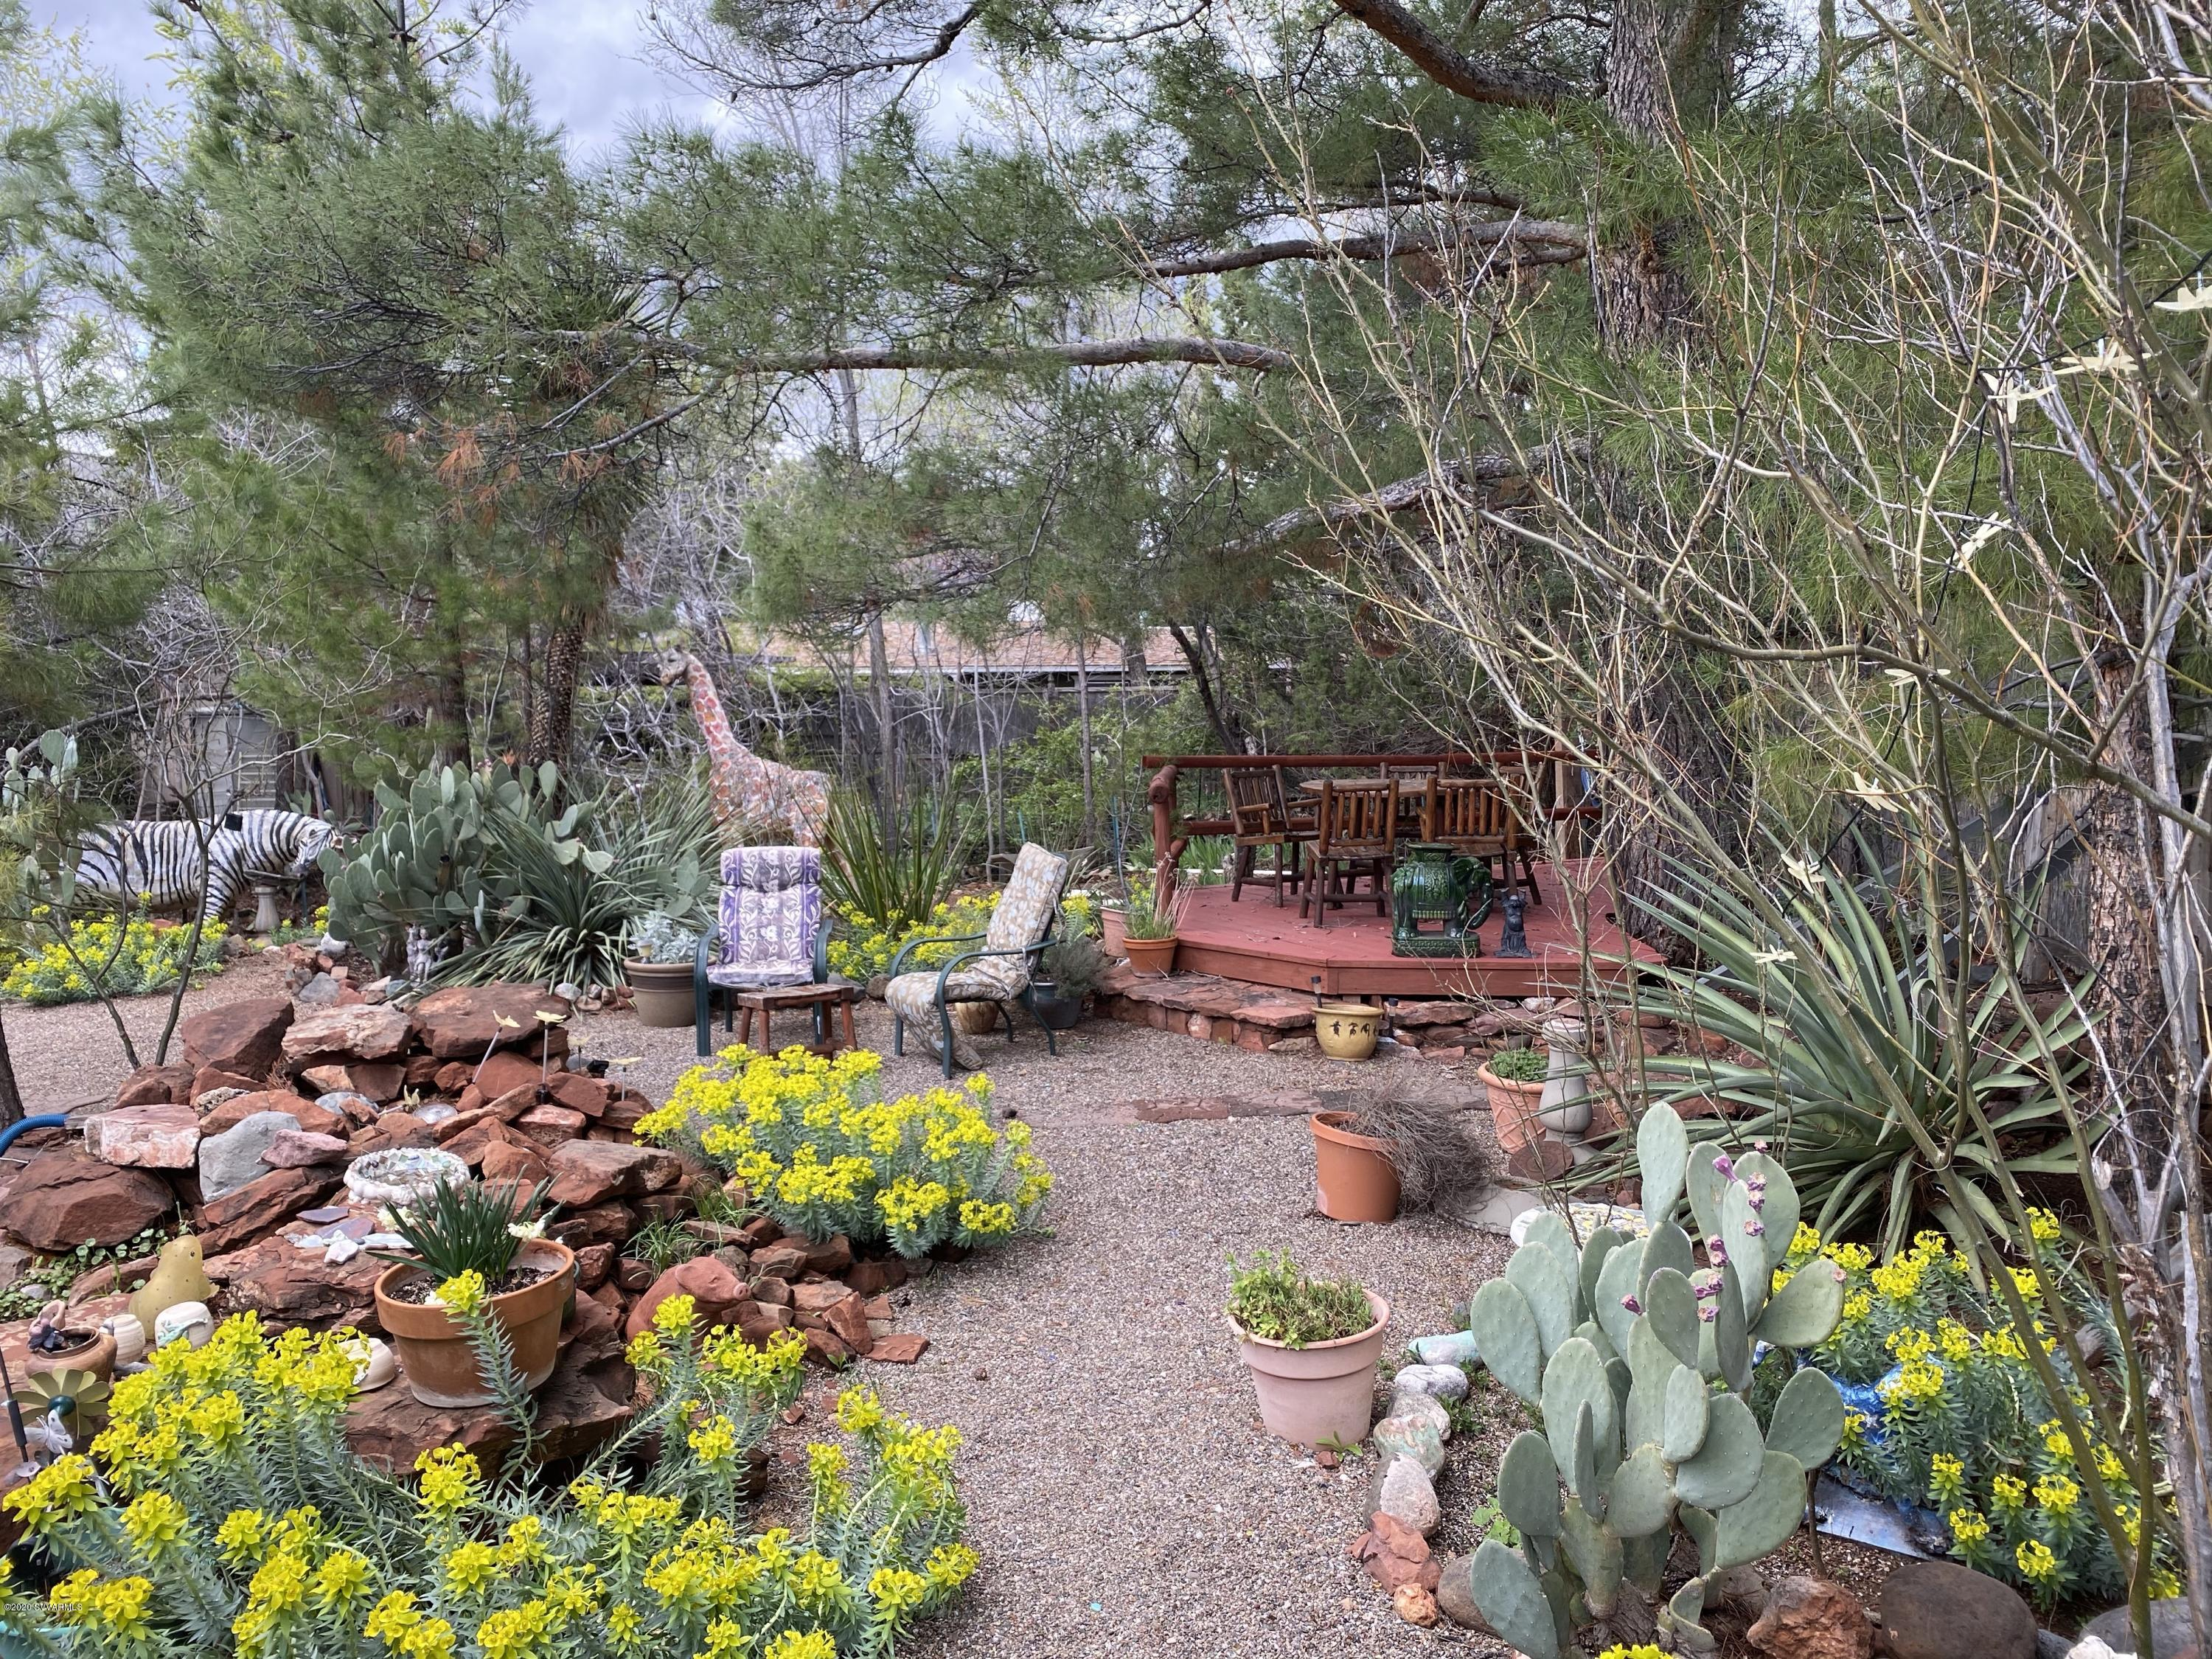 75 Willow Way Sedona, AZ 86336